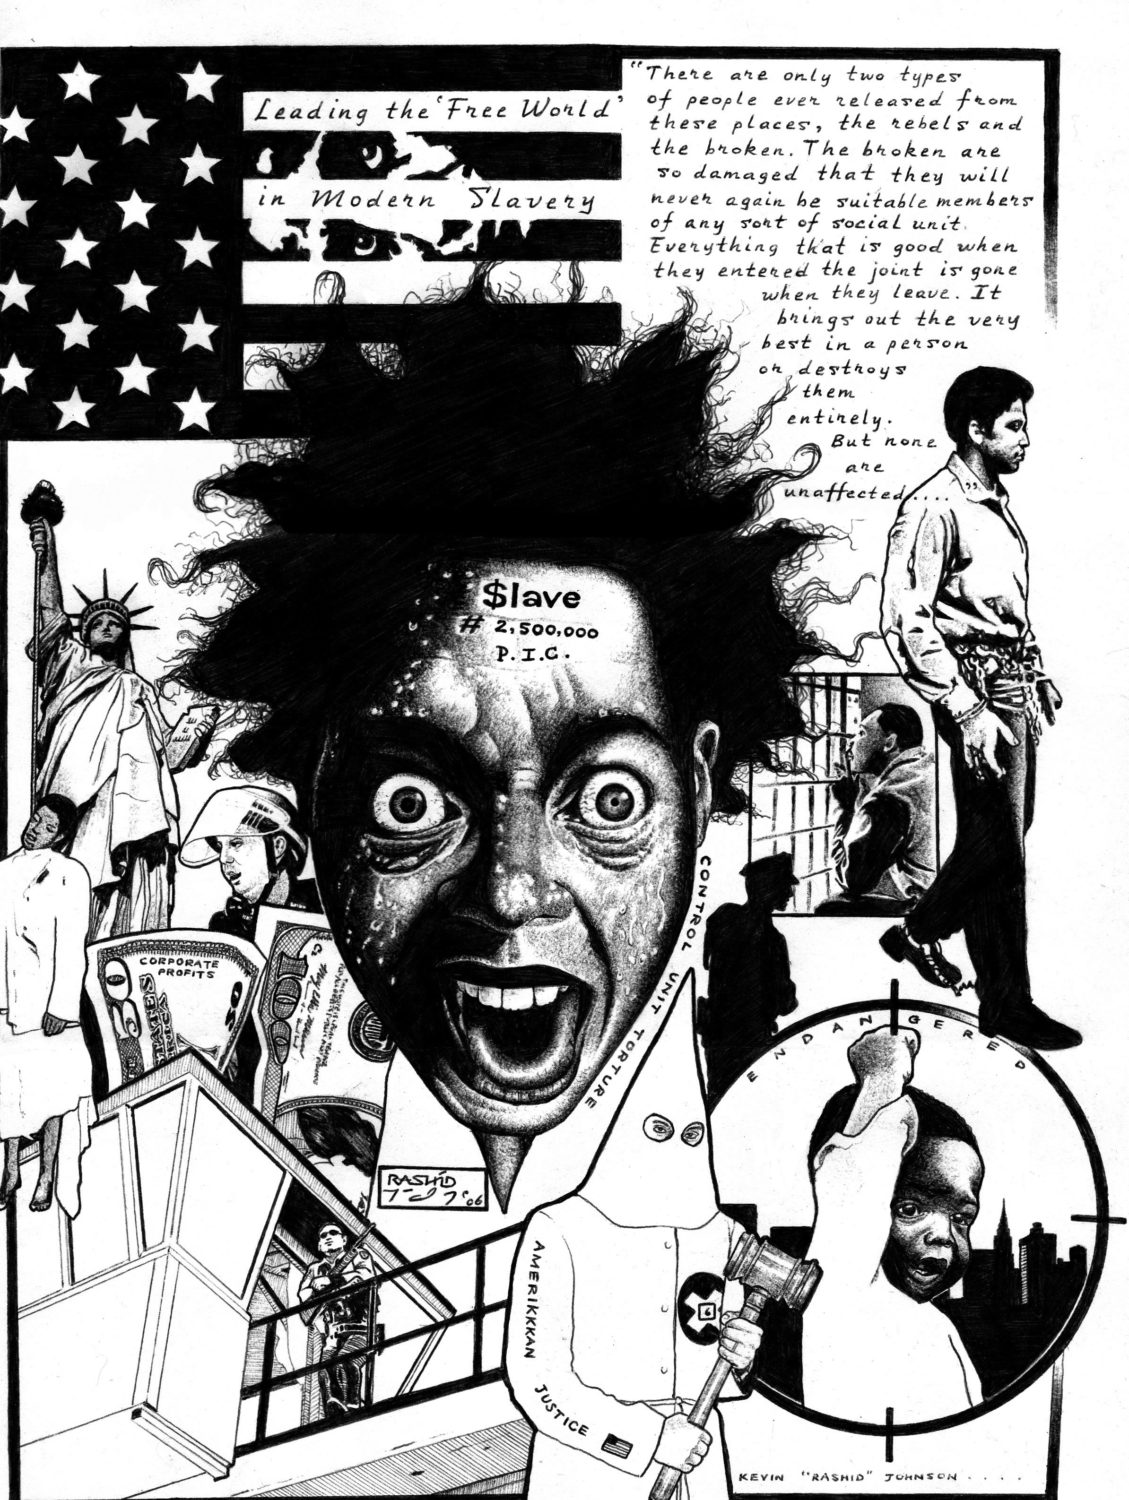 Control-Unit-Torture-art-by-Kevin-Rashid-Johnson, Imprisoned in 'Sundown Towns': The racial politics of my domestic exile, Behind Enemy Lines